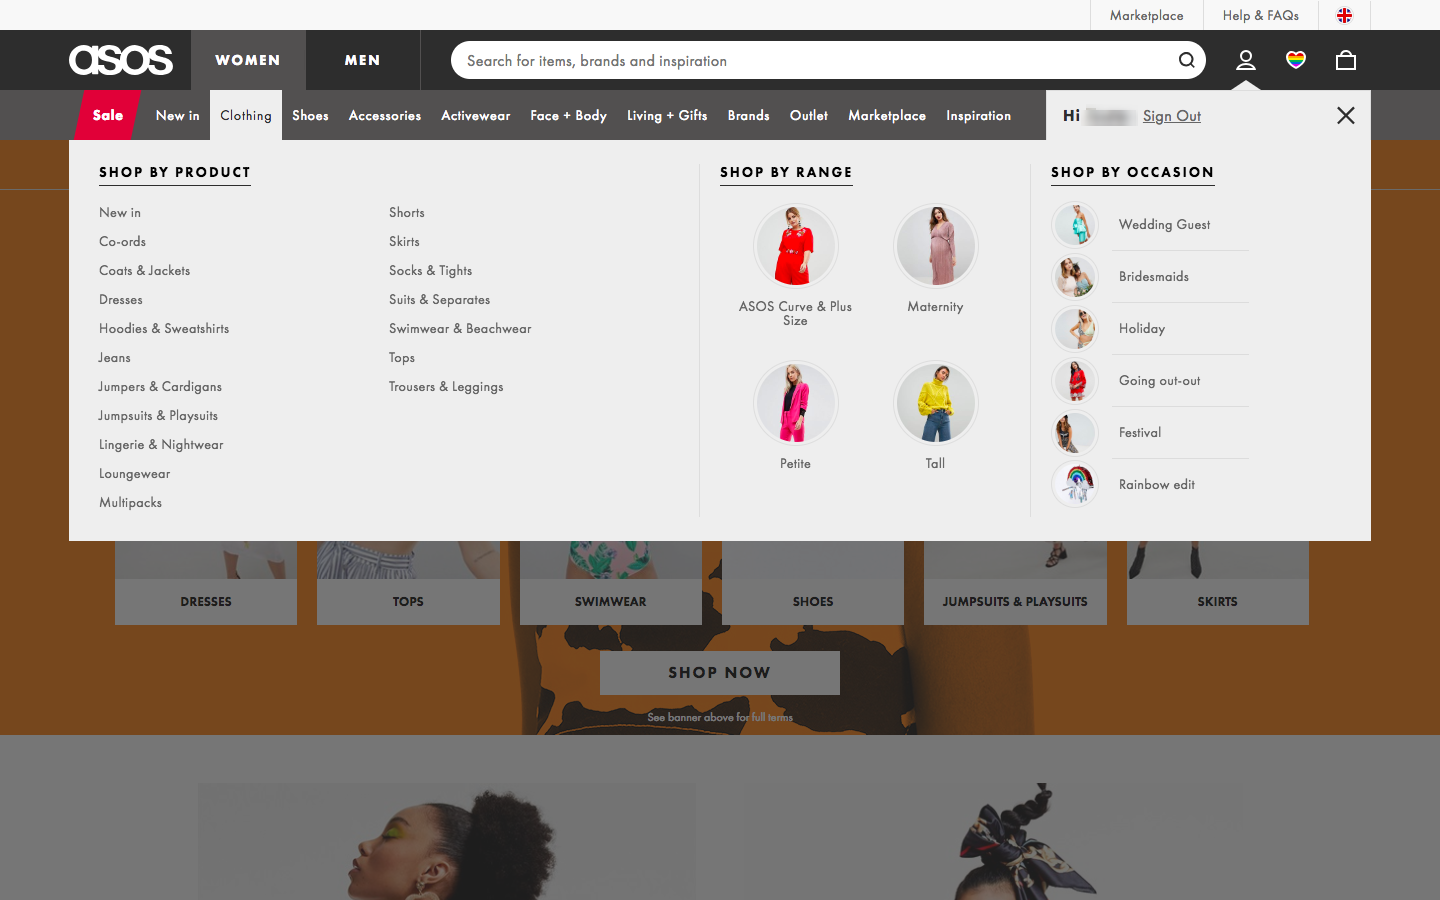 Asos website meganav with clearly categorized links